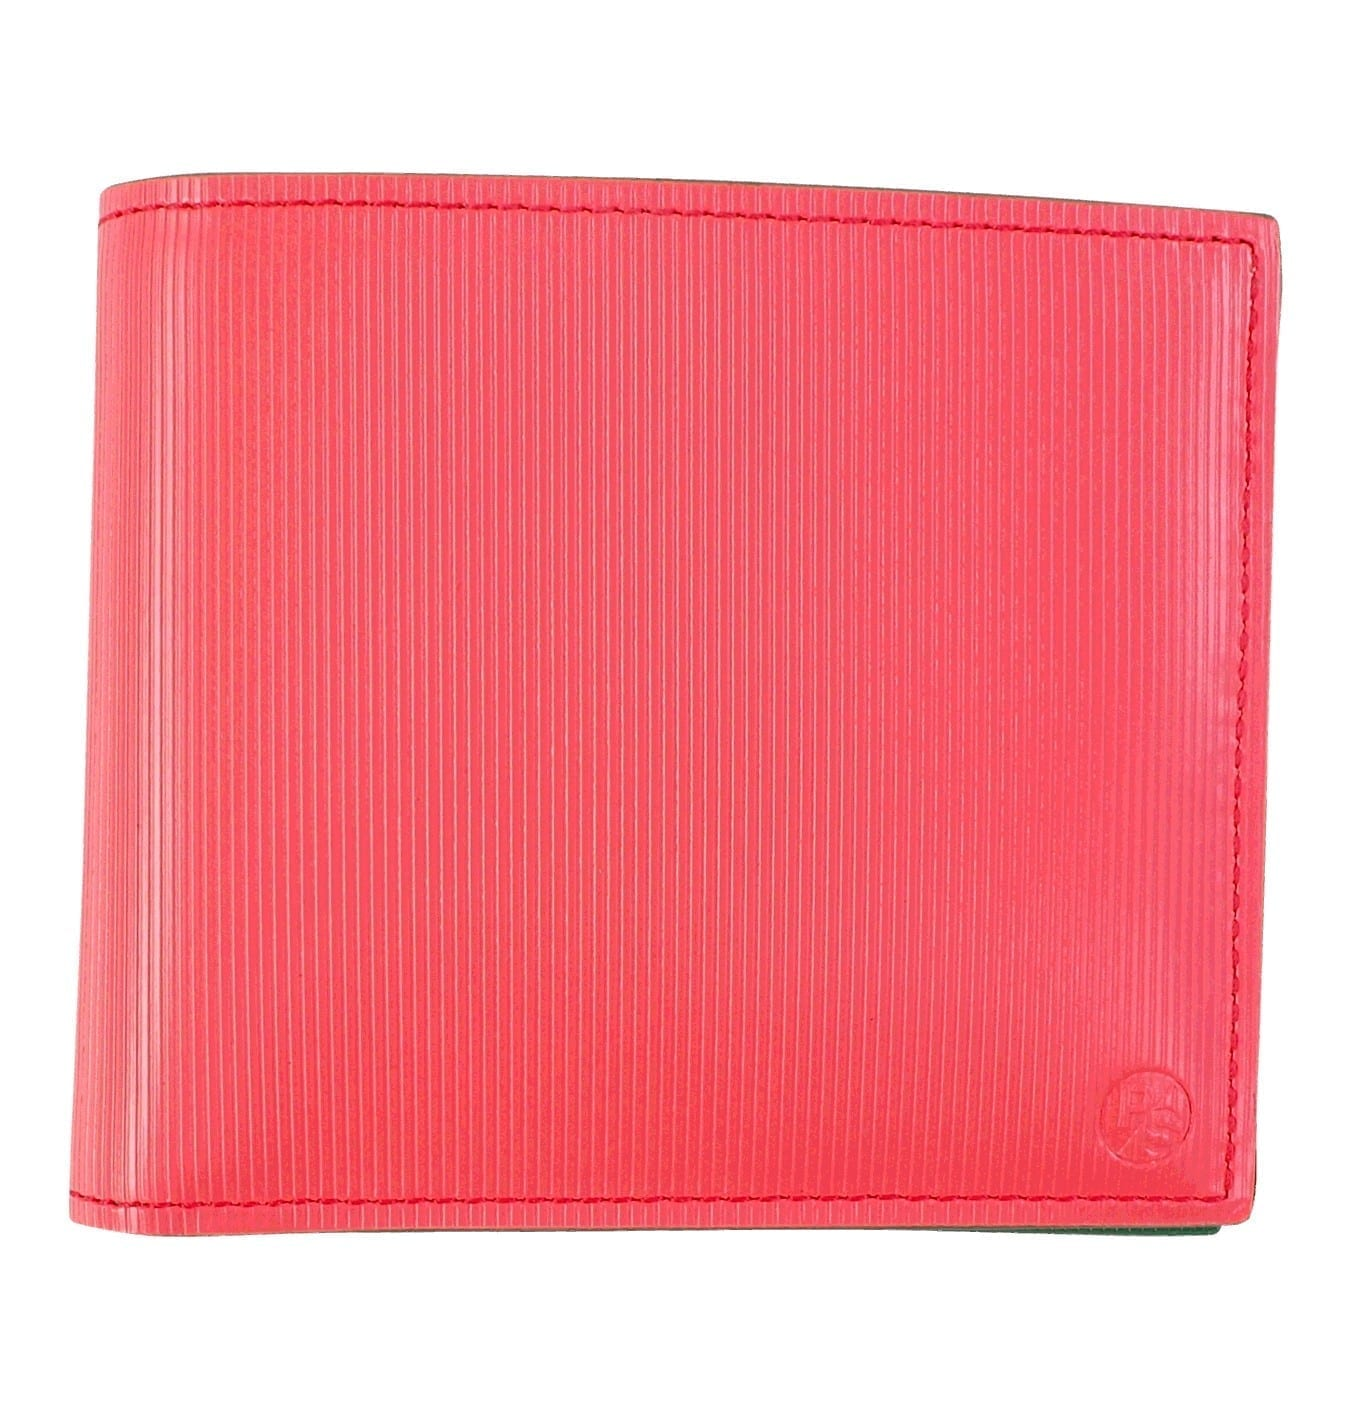 Image of   Men's Wallet Bfold Strem Pink